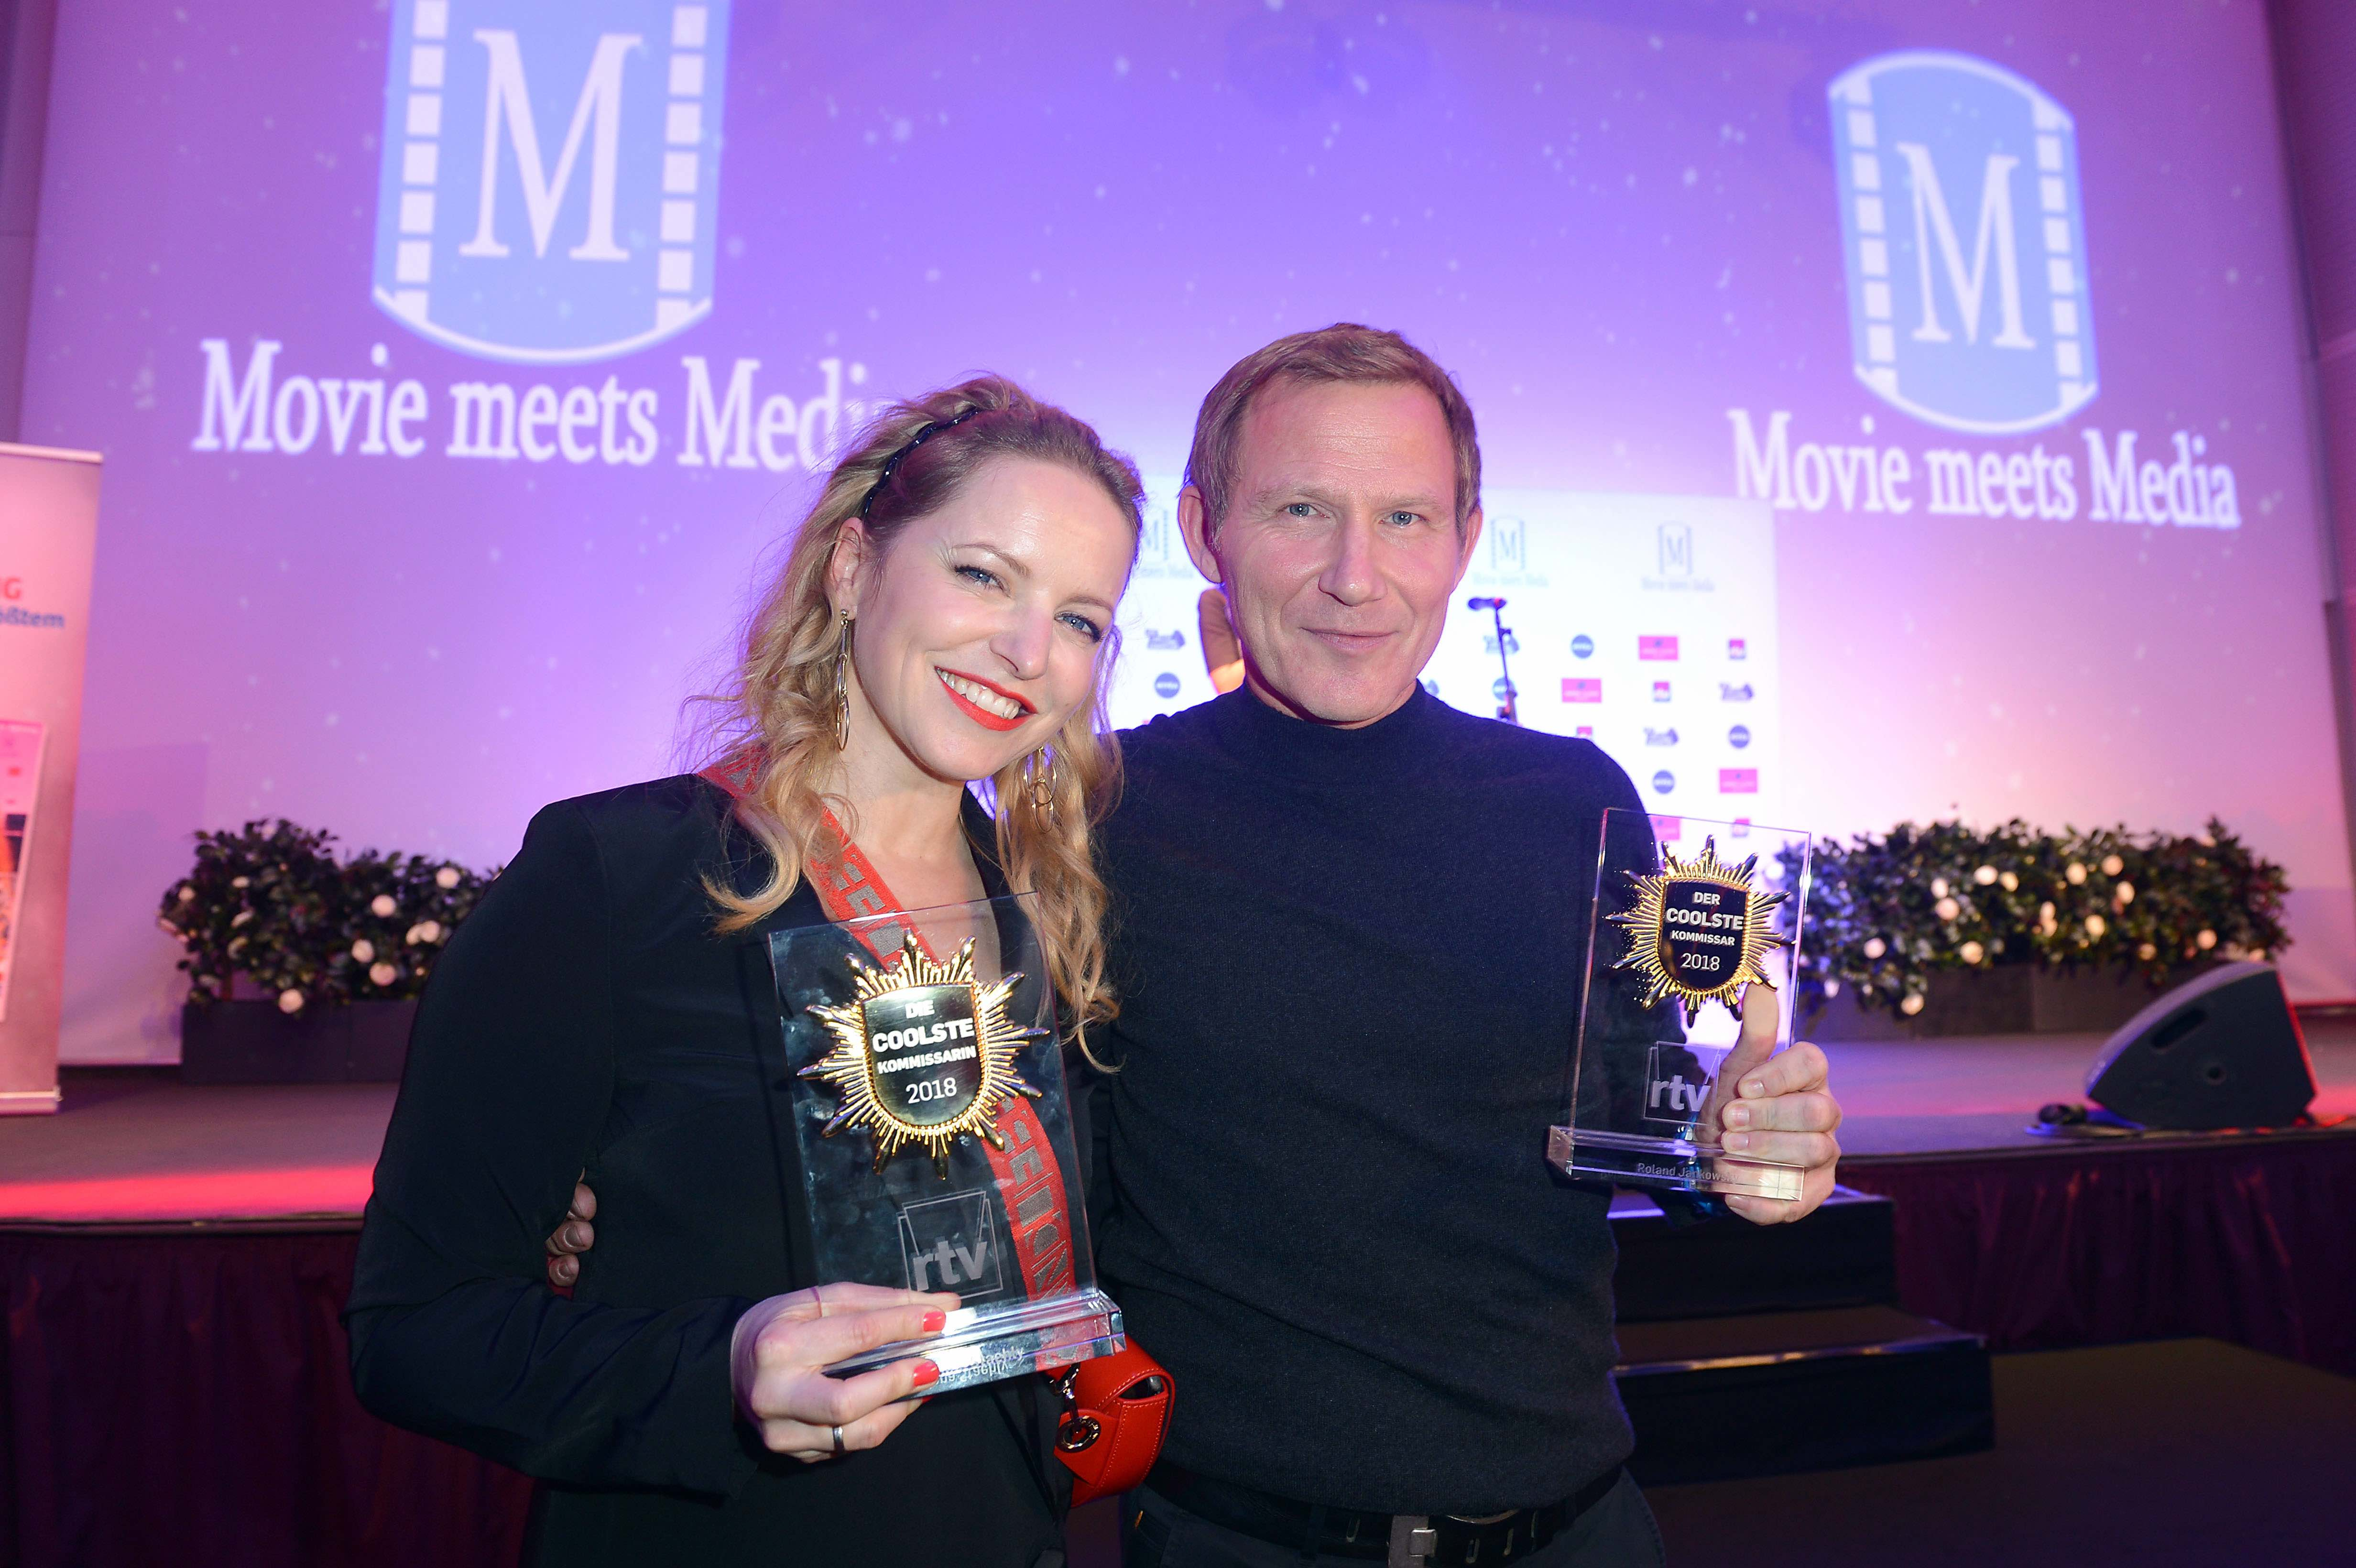 Movie Meets Media: Coolste Kommissare Diana Staehly und Roland Jankowsky, Foto: BrauerPhotos / O. Walterscheid